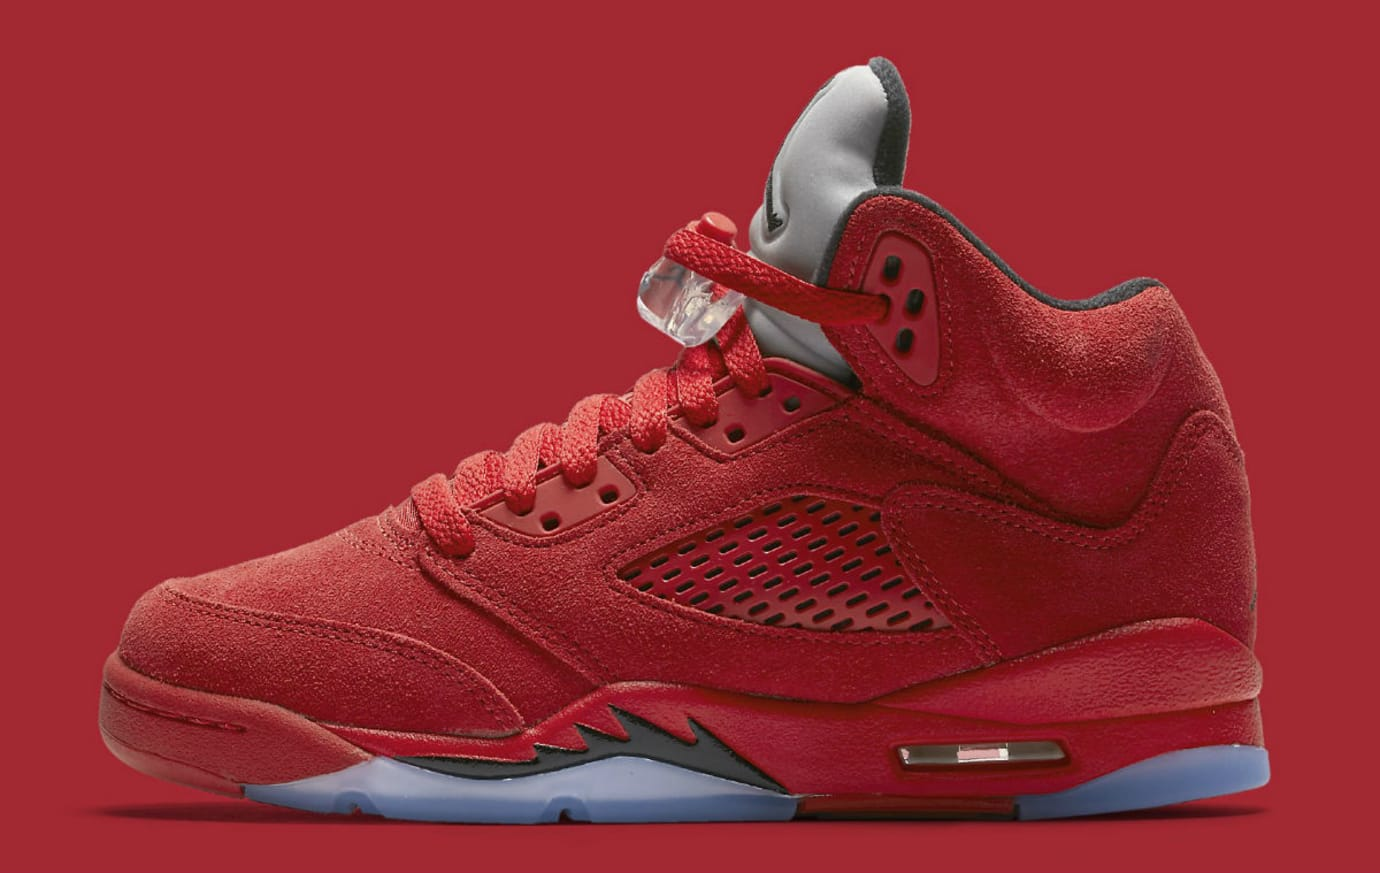 d4e3218b586d Air Jordan 5 Red Suede Full Family Sizes Release Date 136027-602 ...